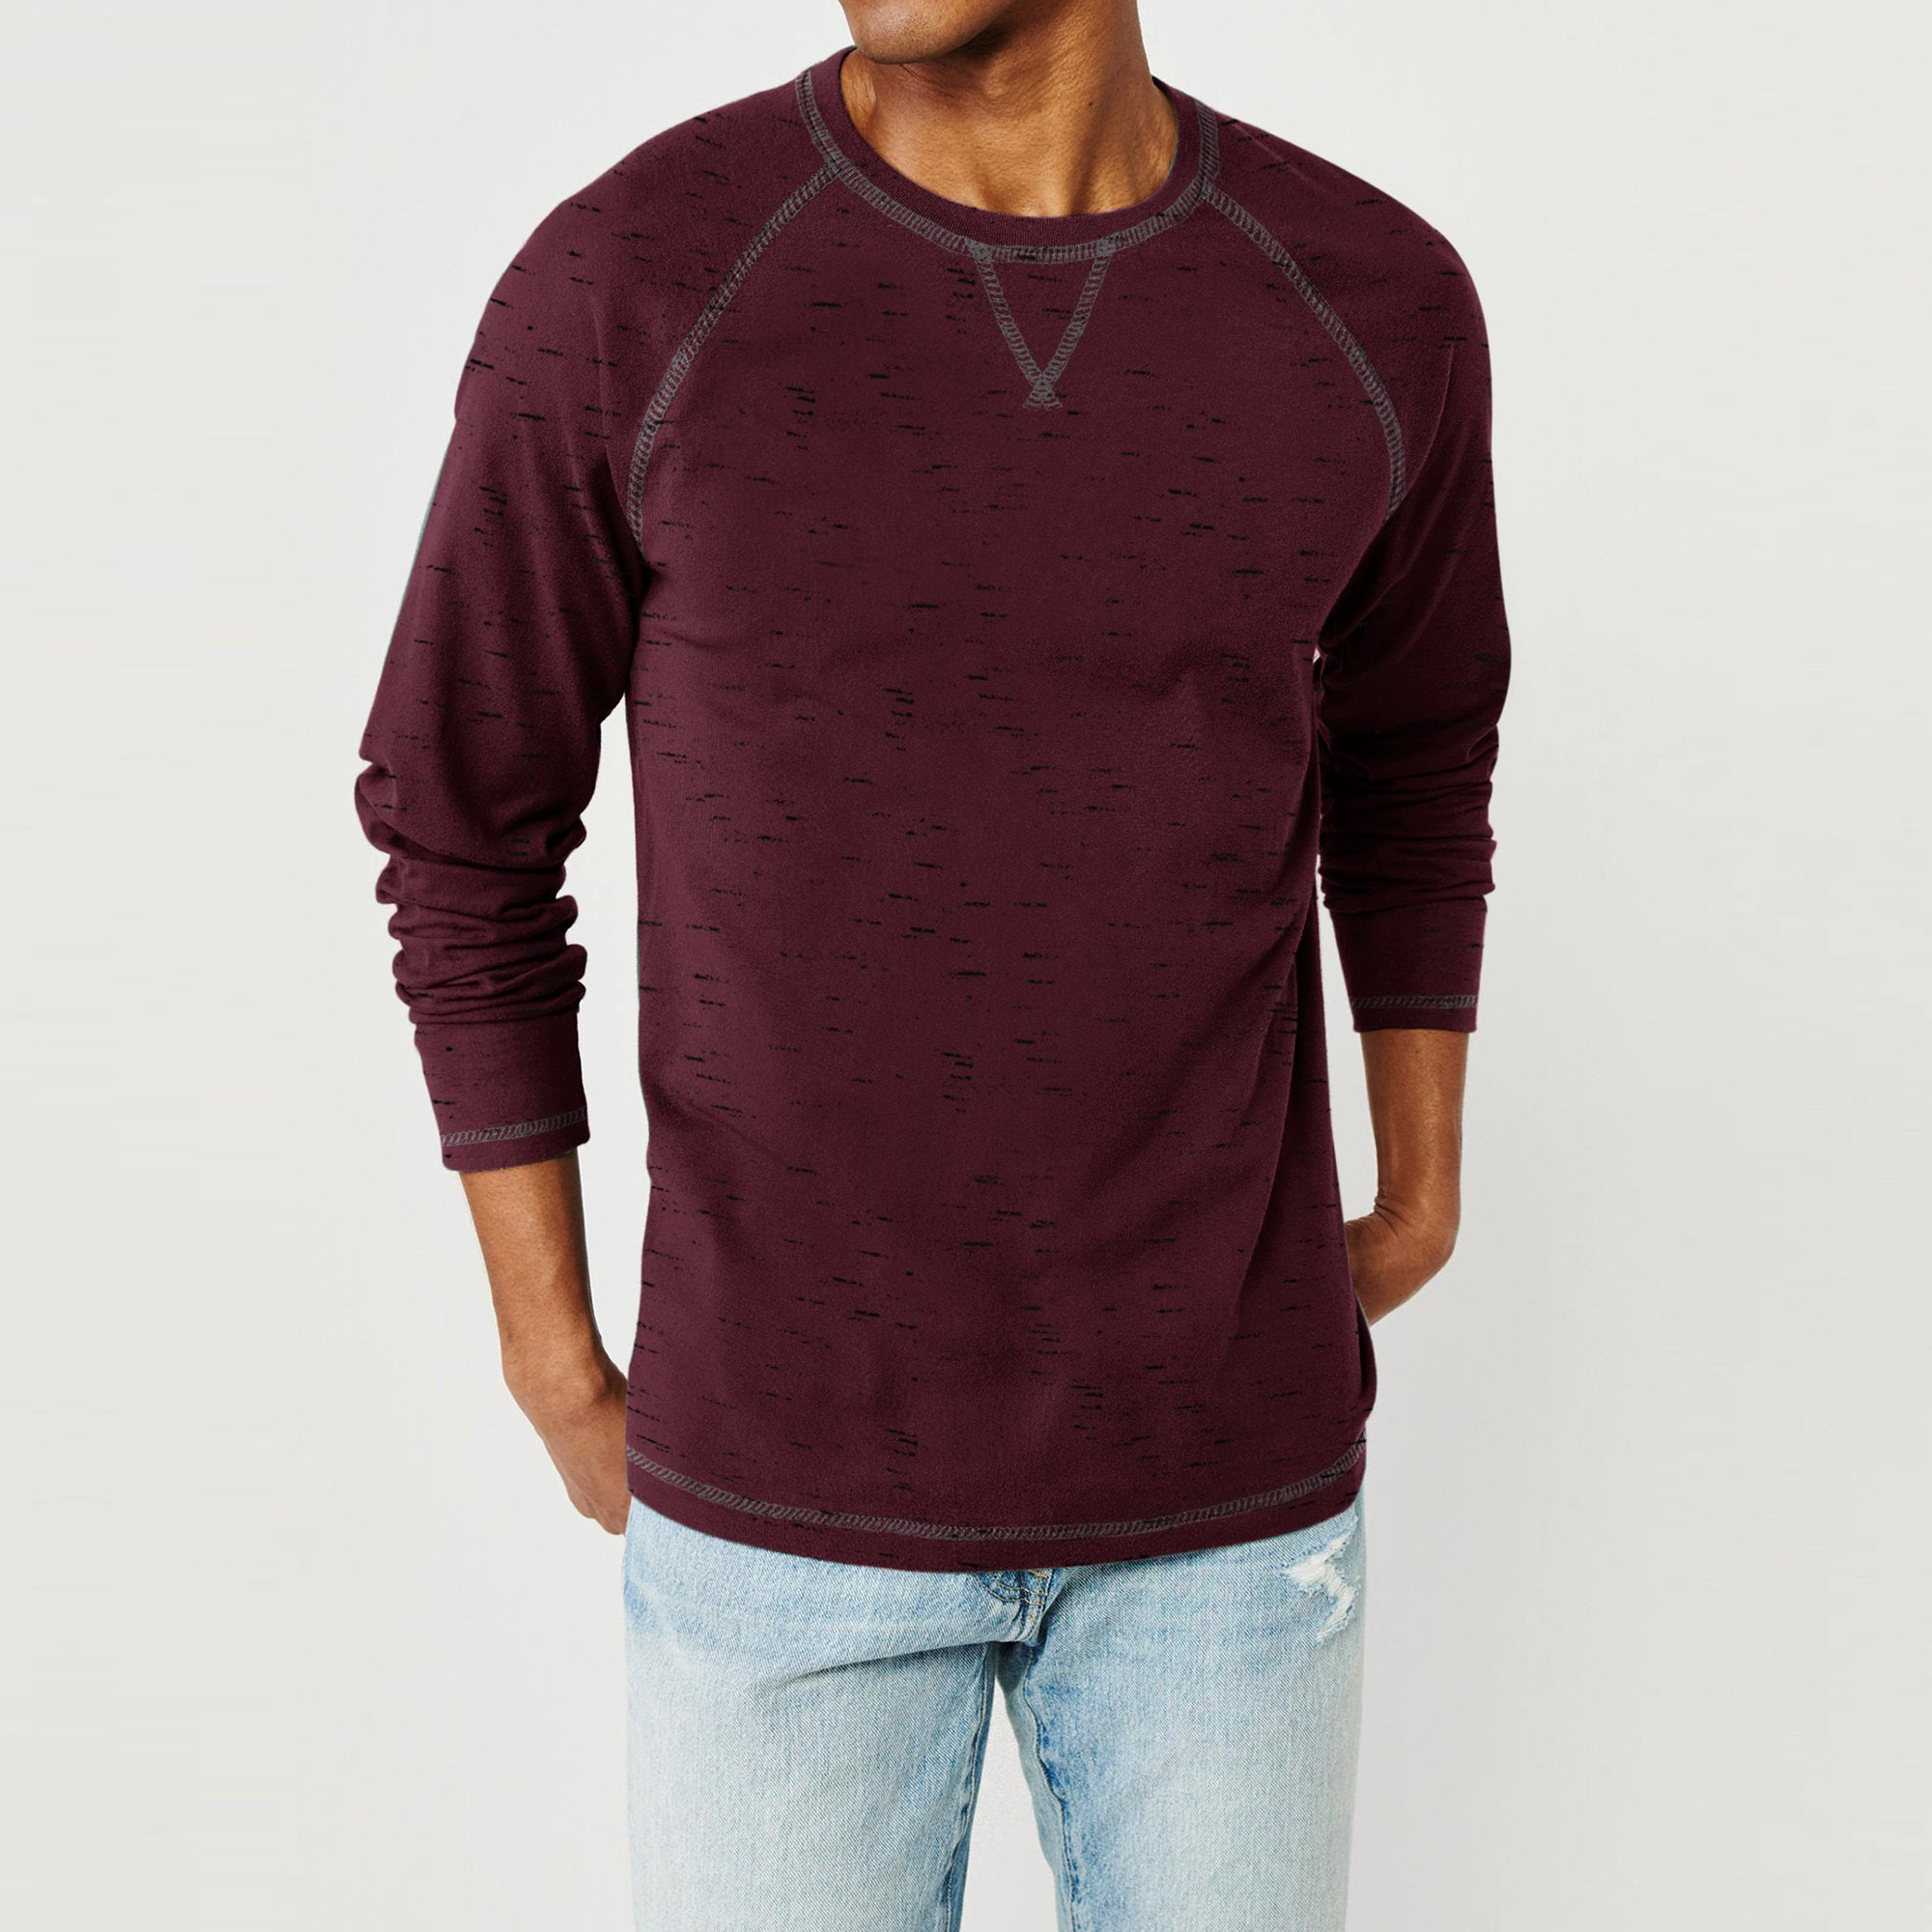 brandsego - Beverly Hills Single Jersey Long Sleeve Tee Shirt For Men-Maroon Melange-NA8925